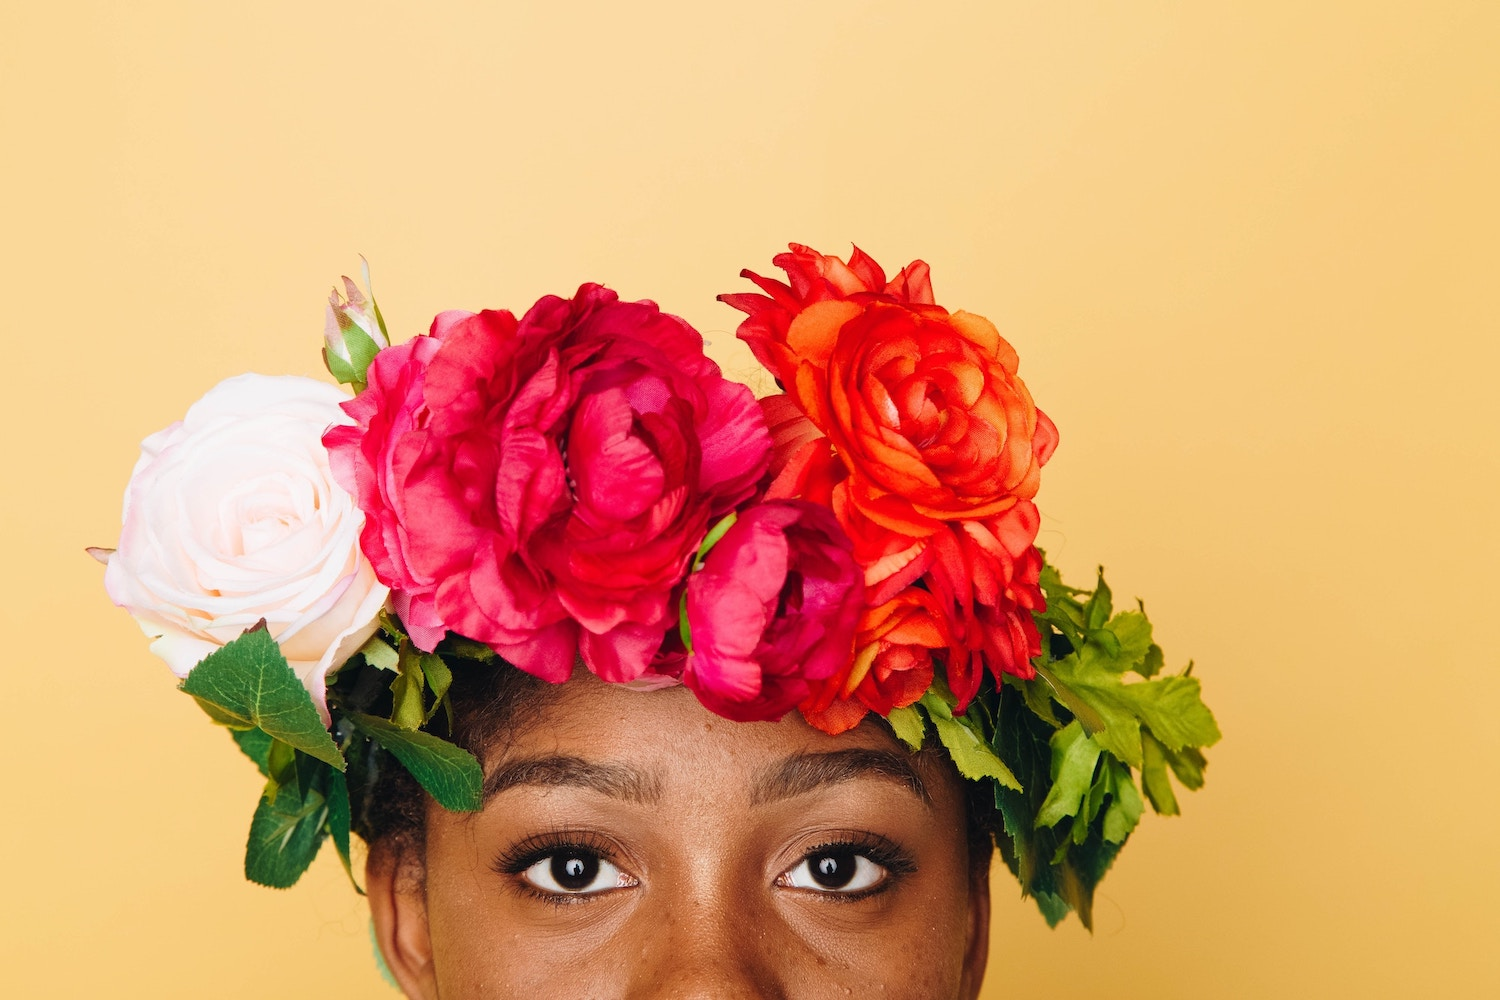 girl-with-flower-crown-find-your-purpose